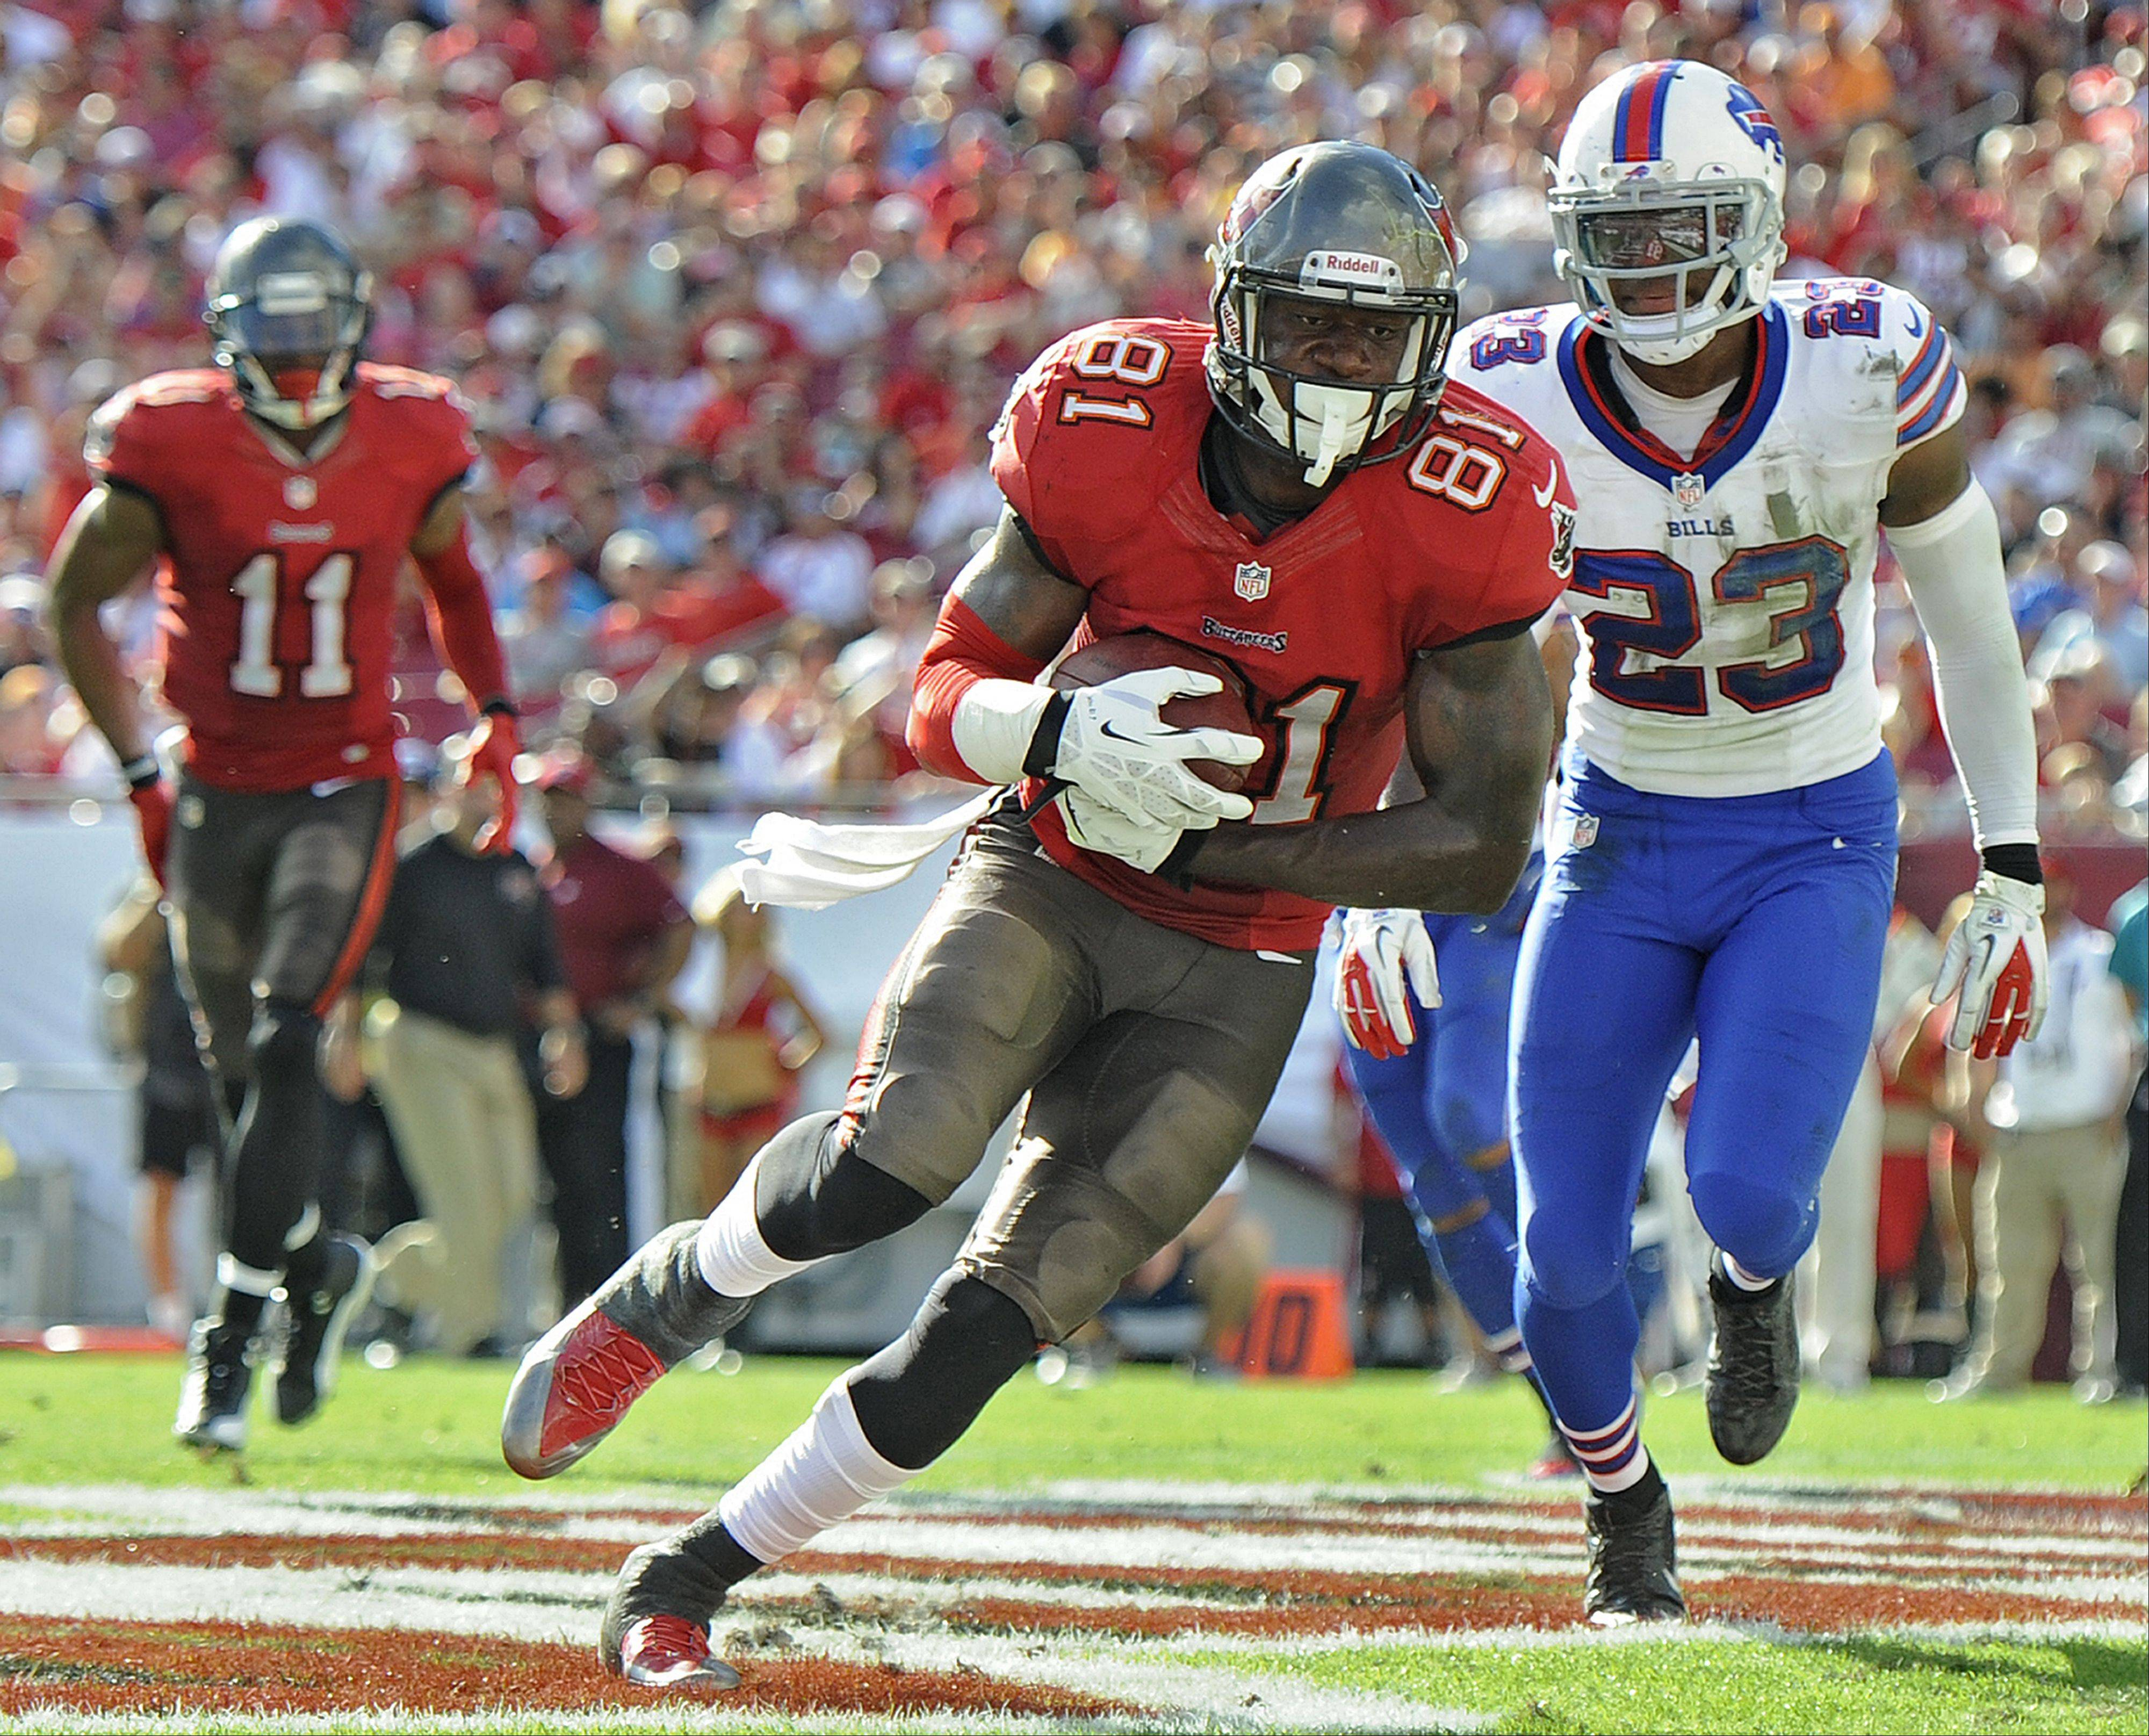 Tampa Bay Buccaneers tight end Timothy Wright (81) scores past Buffalo Bills free safety Aaron Williams (23) on a five-yard touchdown reception during the second quarter of an NFL football game Sunday, Dec. 8, 2013, in Tampa, Fla.